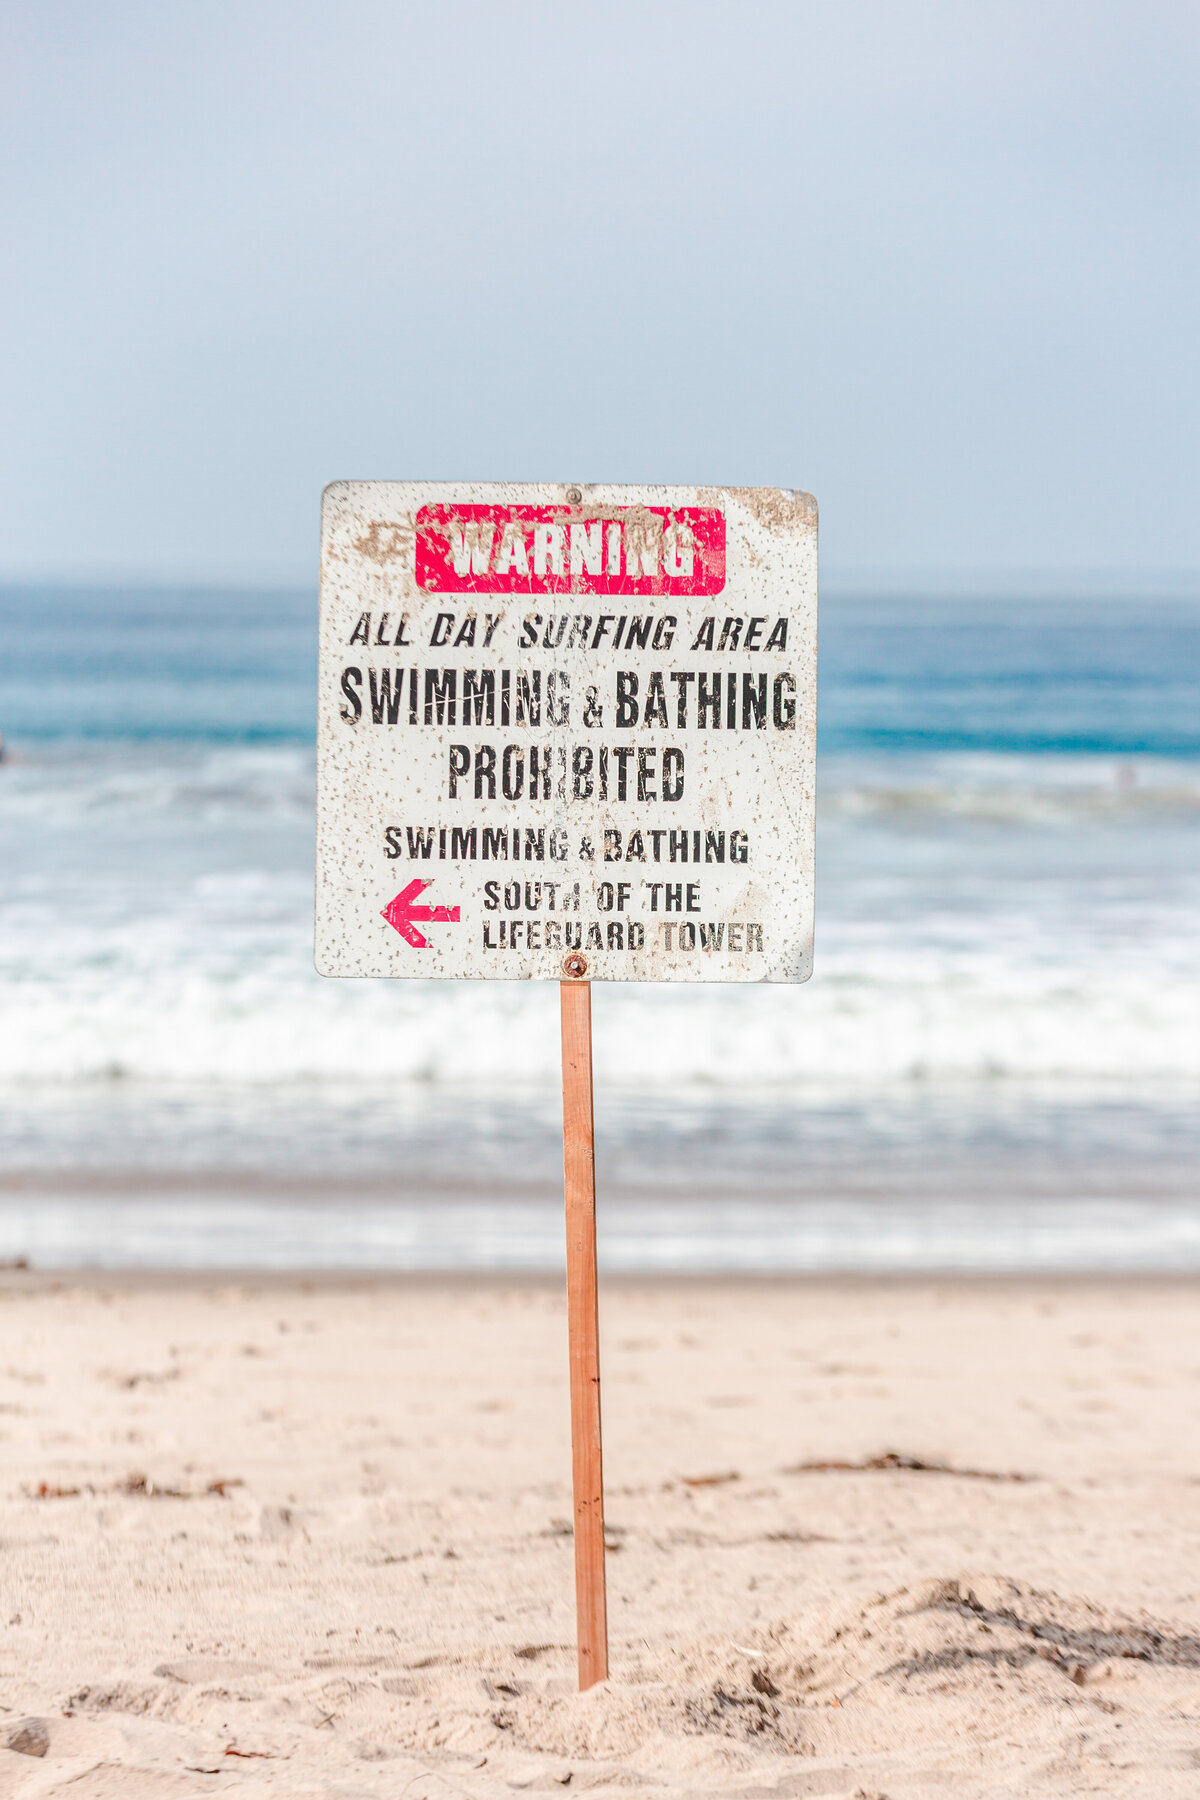 005-006-KBP-California-Beach-Ocean-No-Swimming